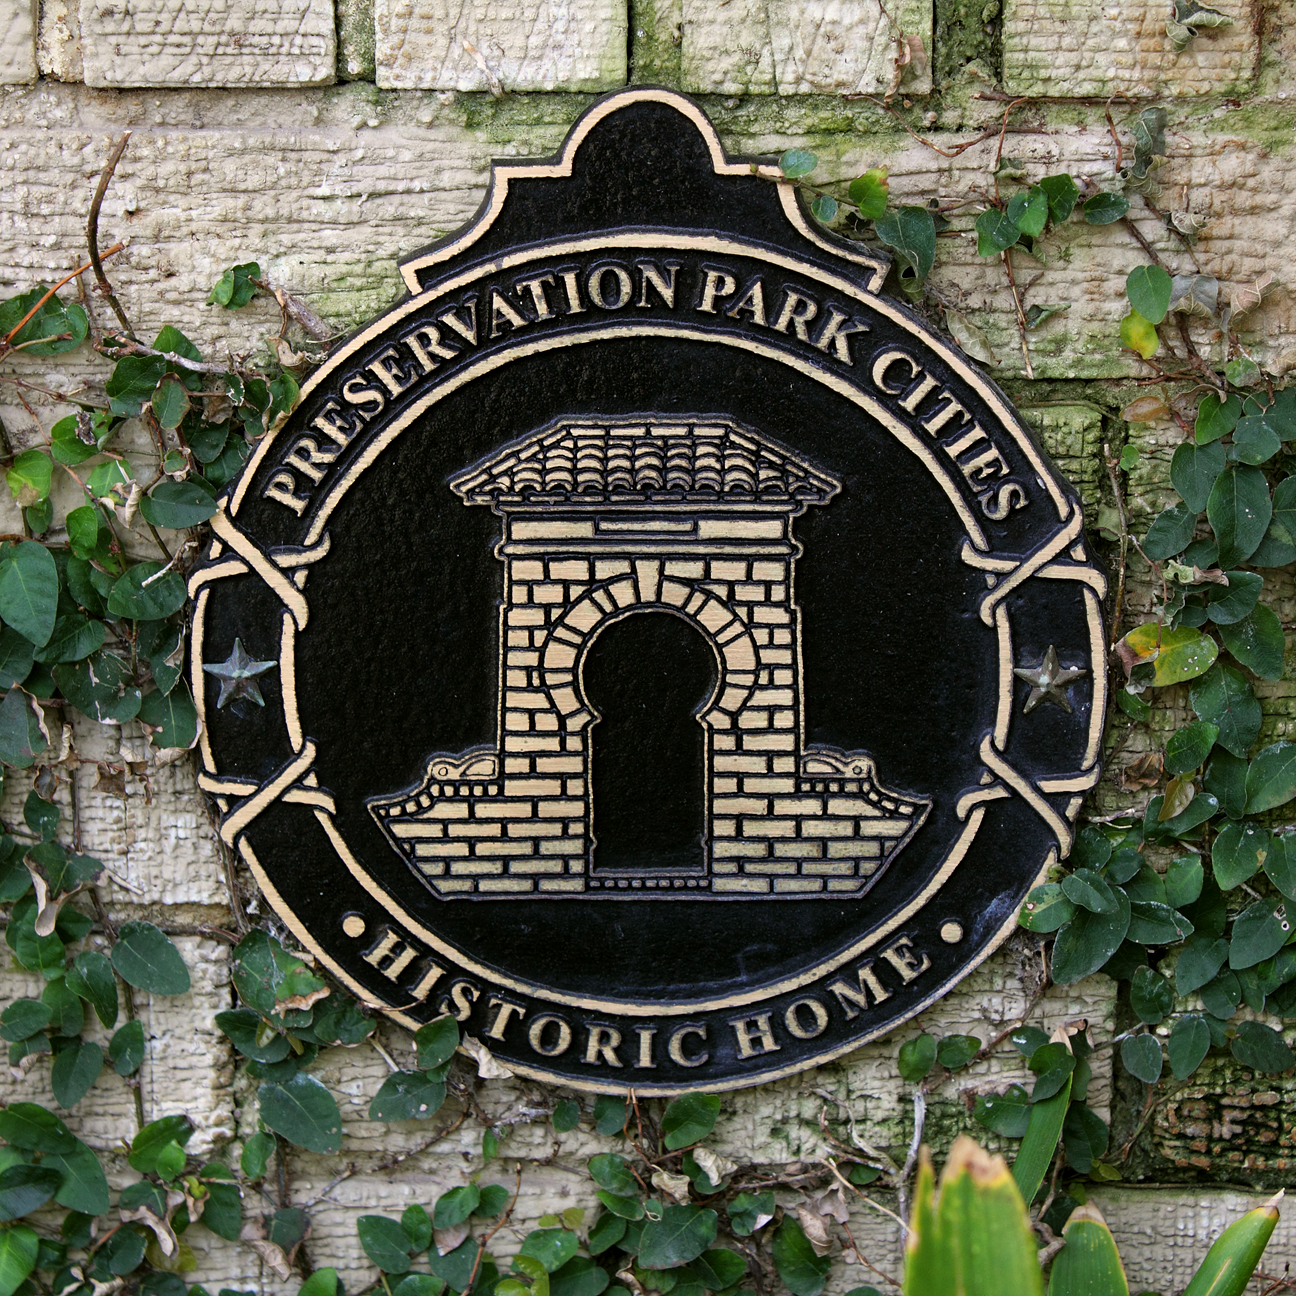 plaque-historic_0059-sq